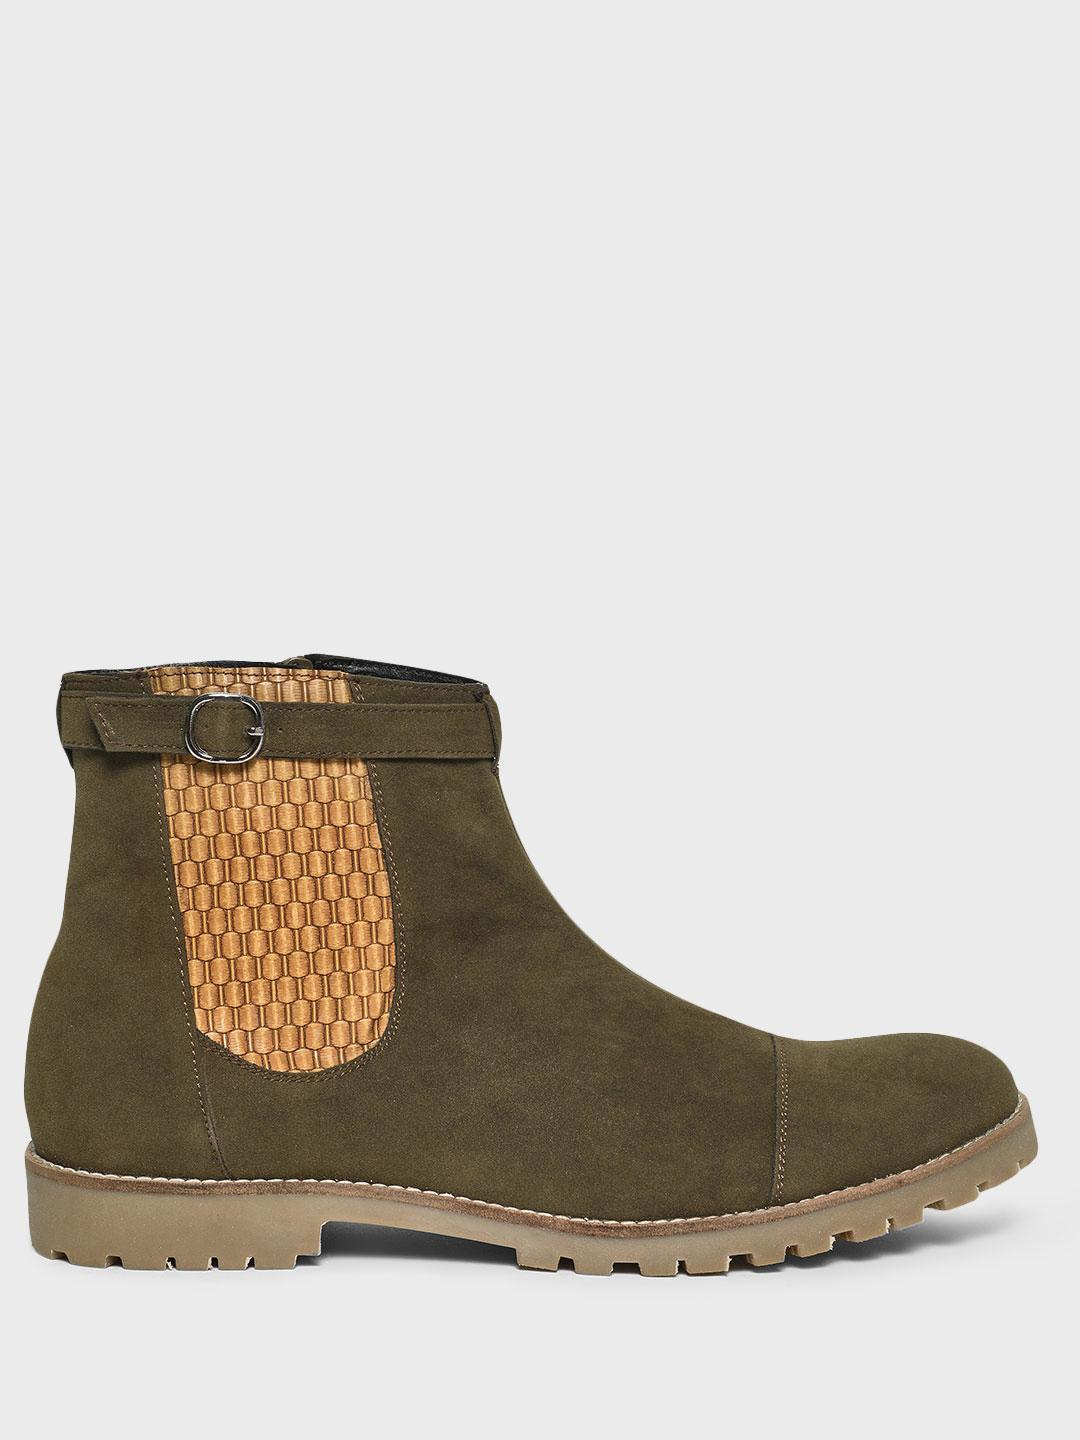 Bolt Of The Good Stuff Green Textured Panel Suede Boots 1